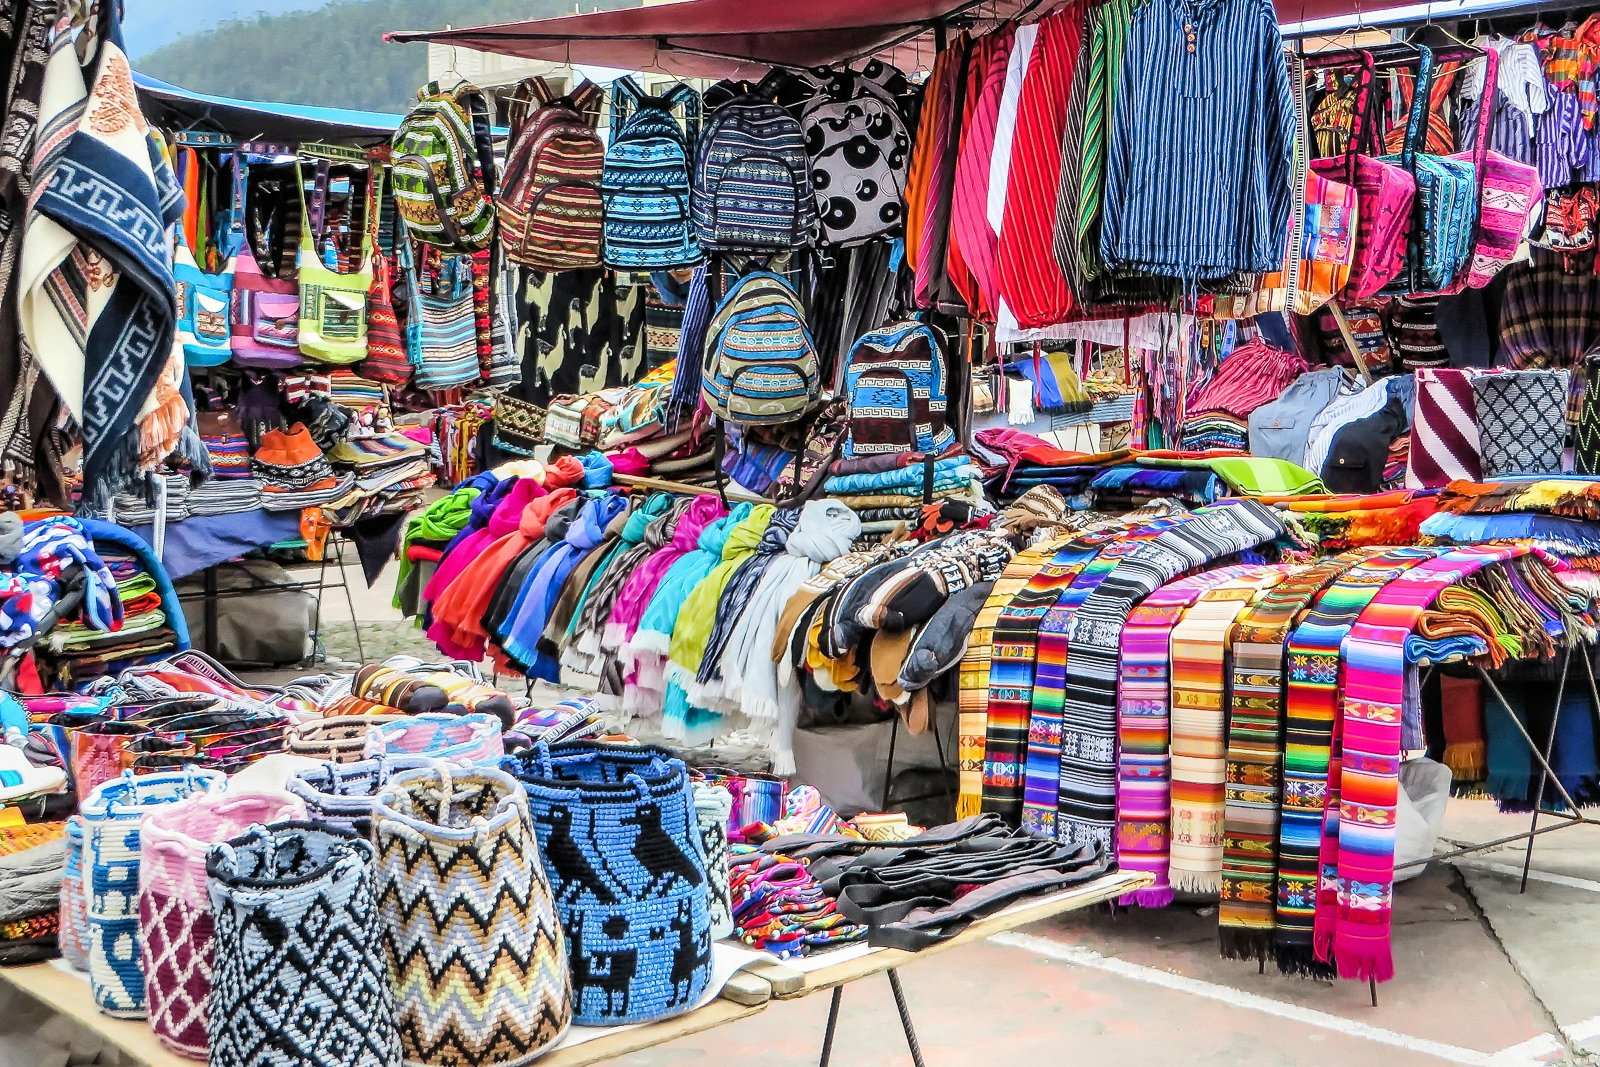 Things to do in Ecuador, visit the crafts market at otavalo Market in Otavalo Ecuador. One of the top places to visit in Ecuador